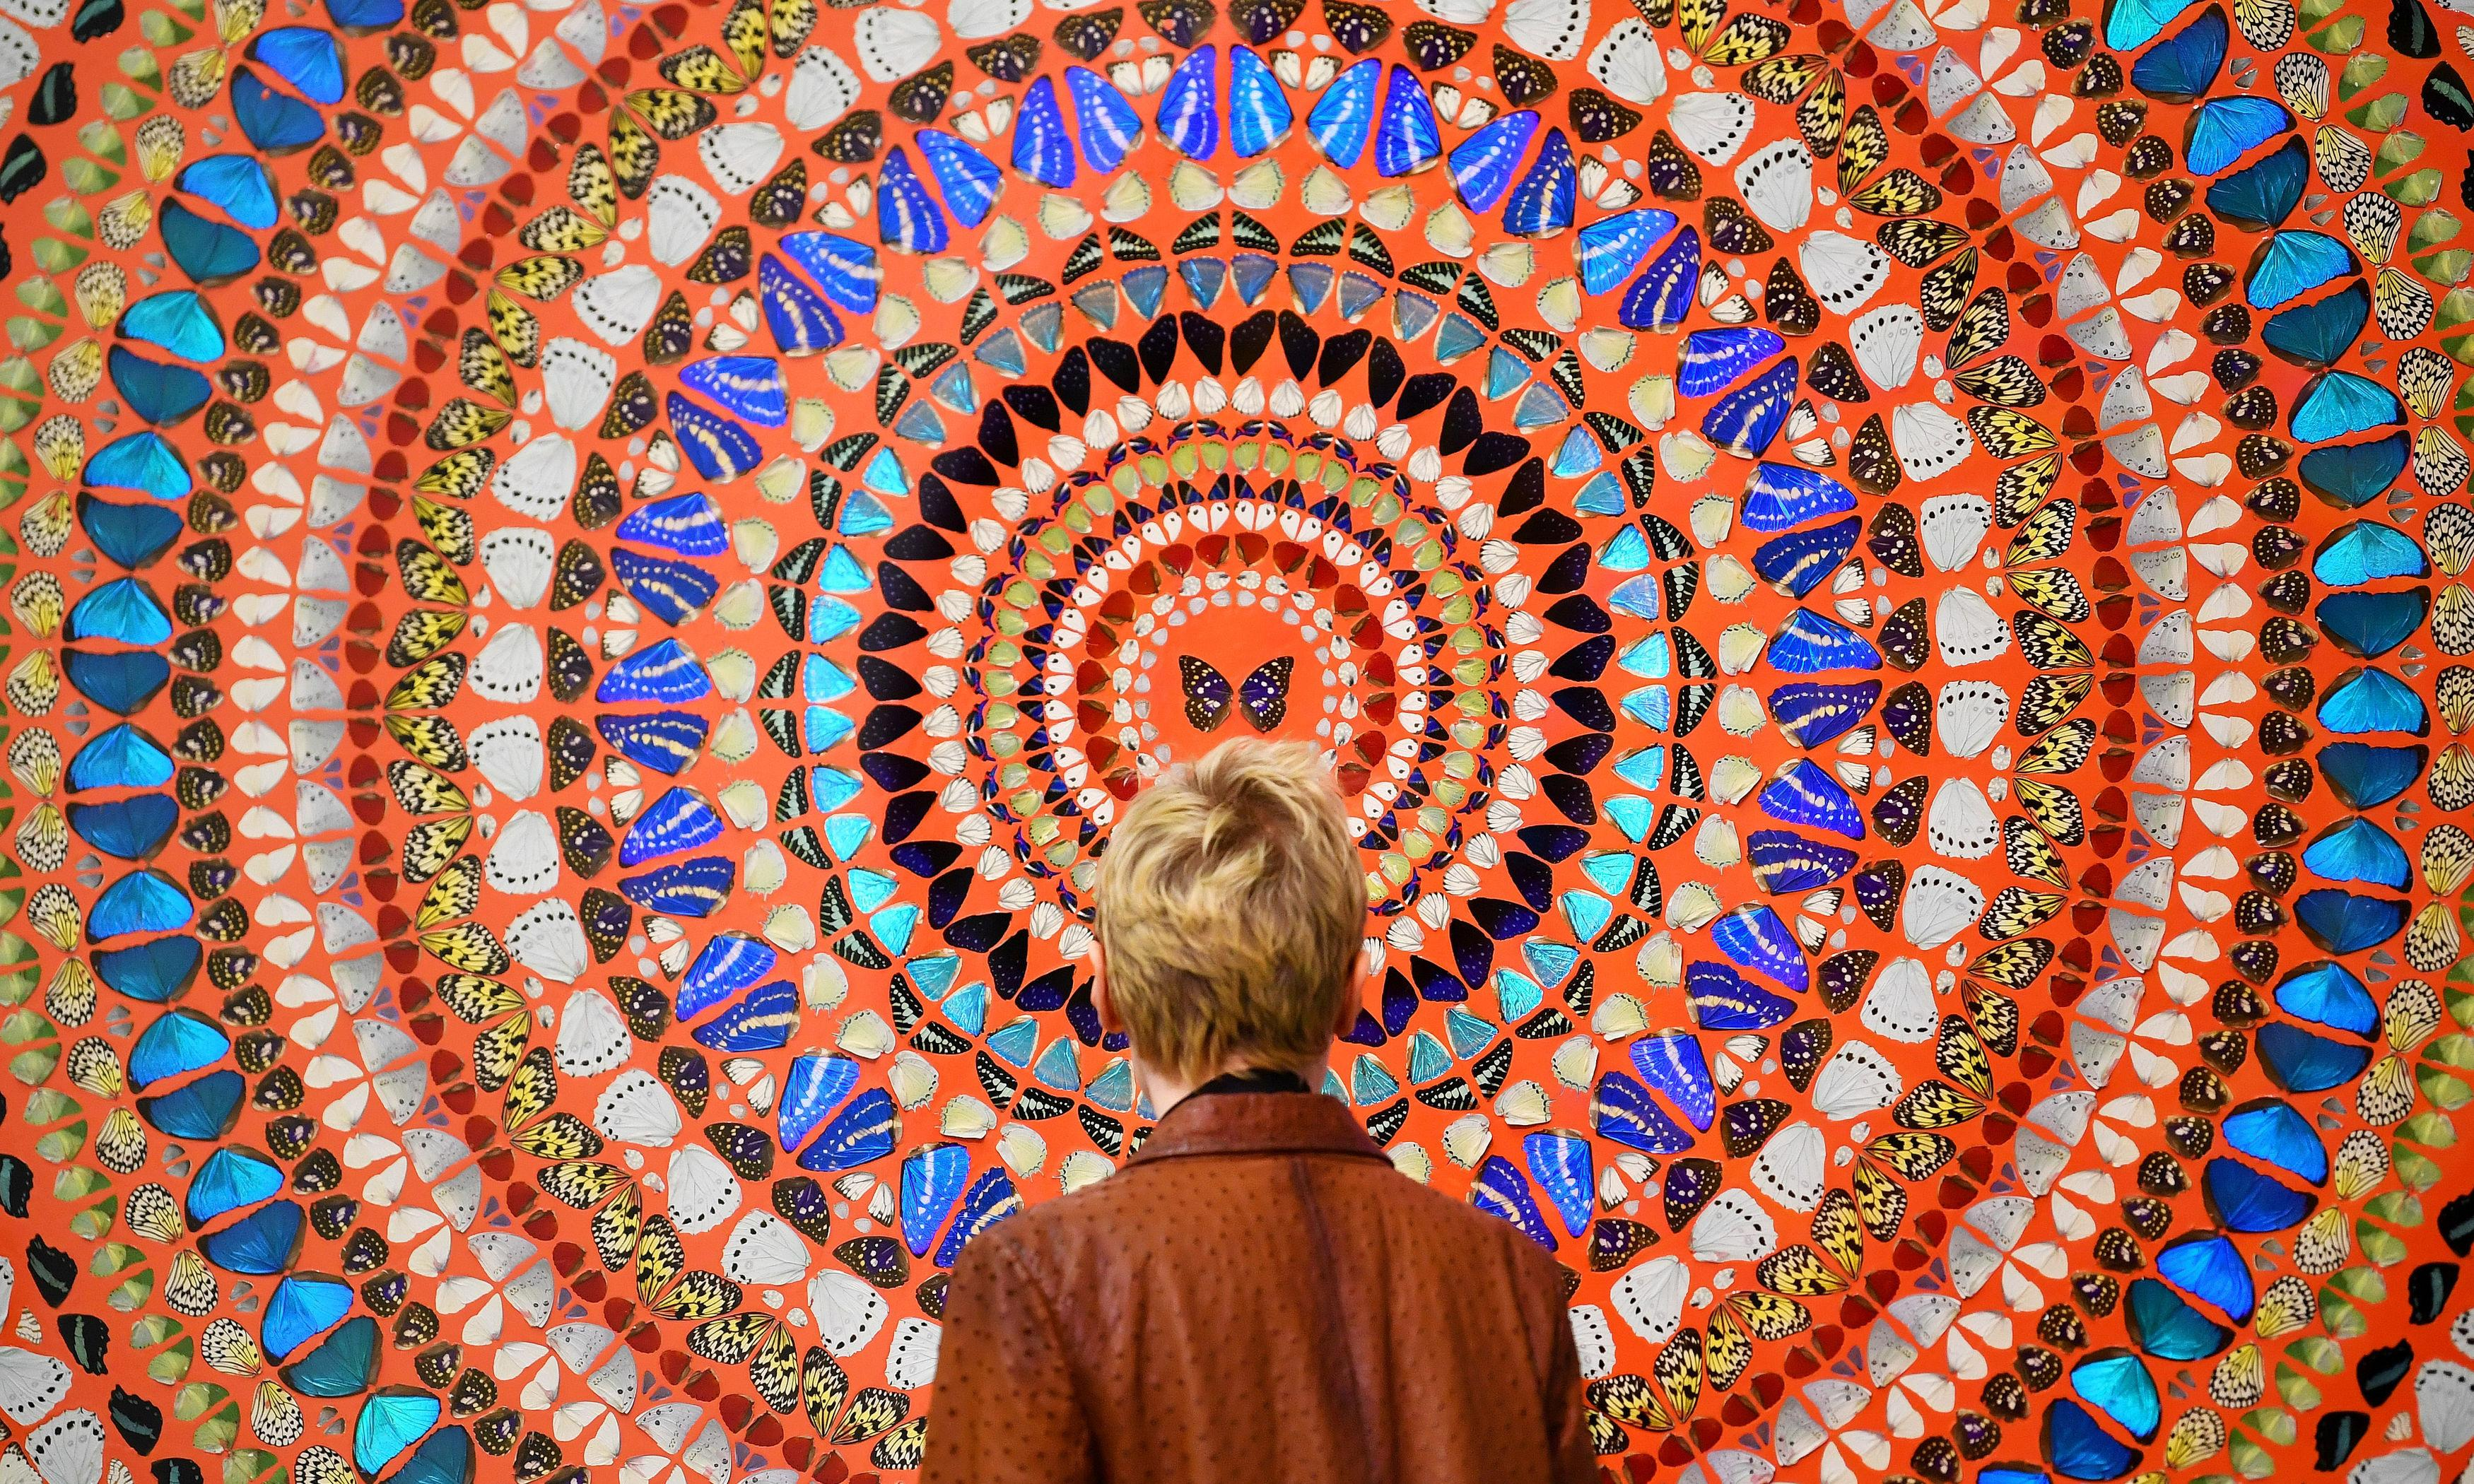 A rebel sharpens her pencil and Hirst spreads his wings – the week in art